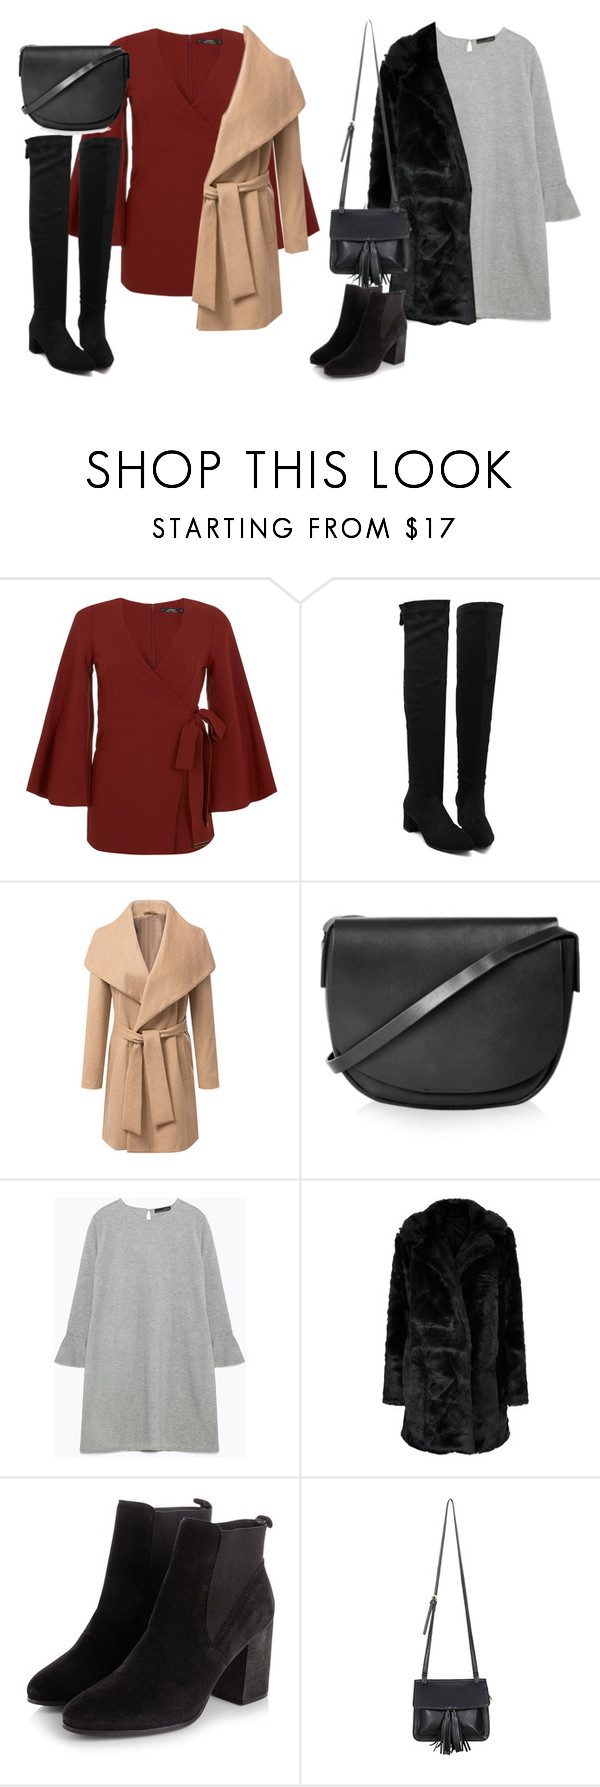 """Christmas Show"" by perrieanddaniellestyle ❤ liked on Polyvore featuring Miss Selfridge, Topshop, Zara, Parisian and Chicnova Fashion"